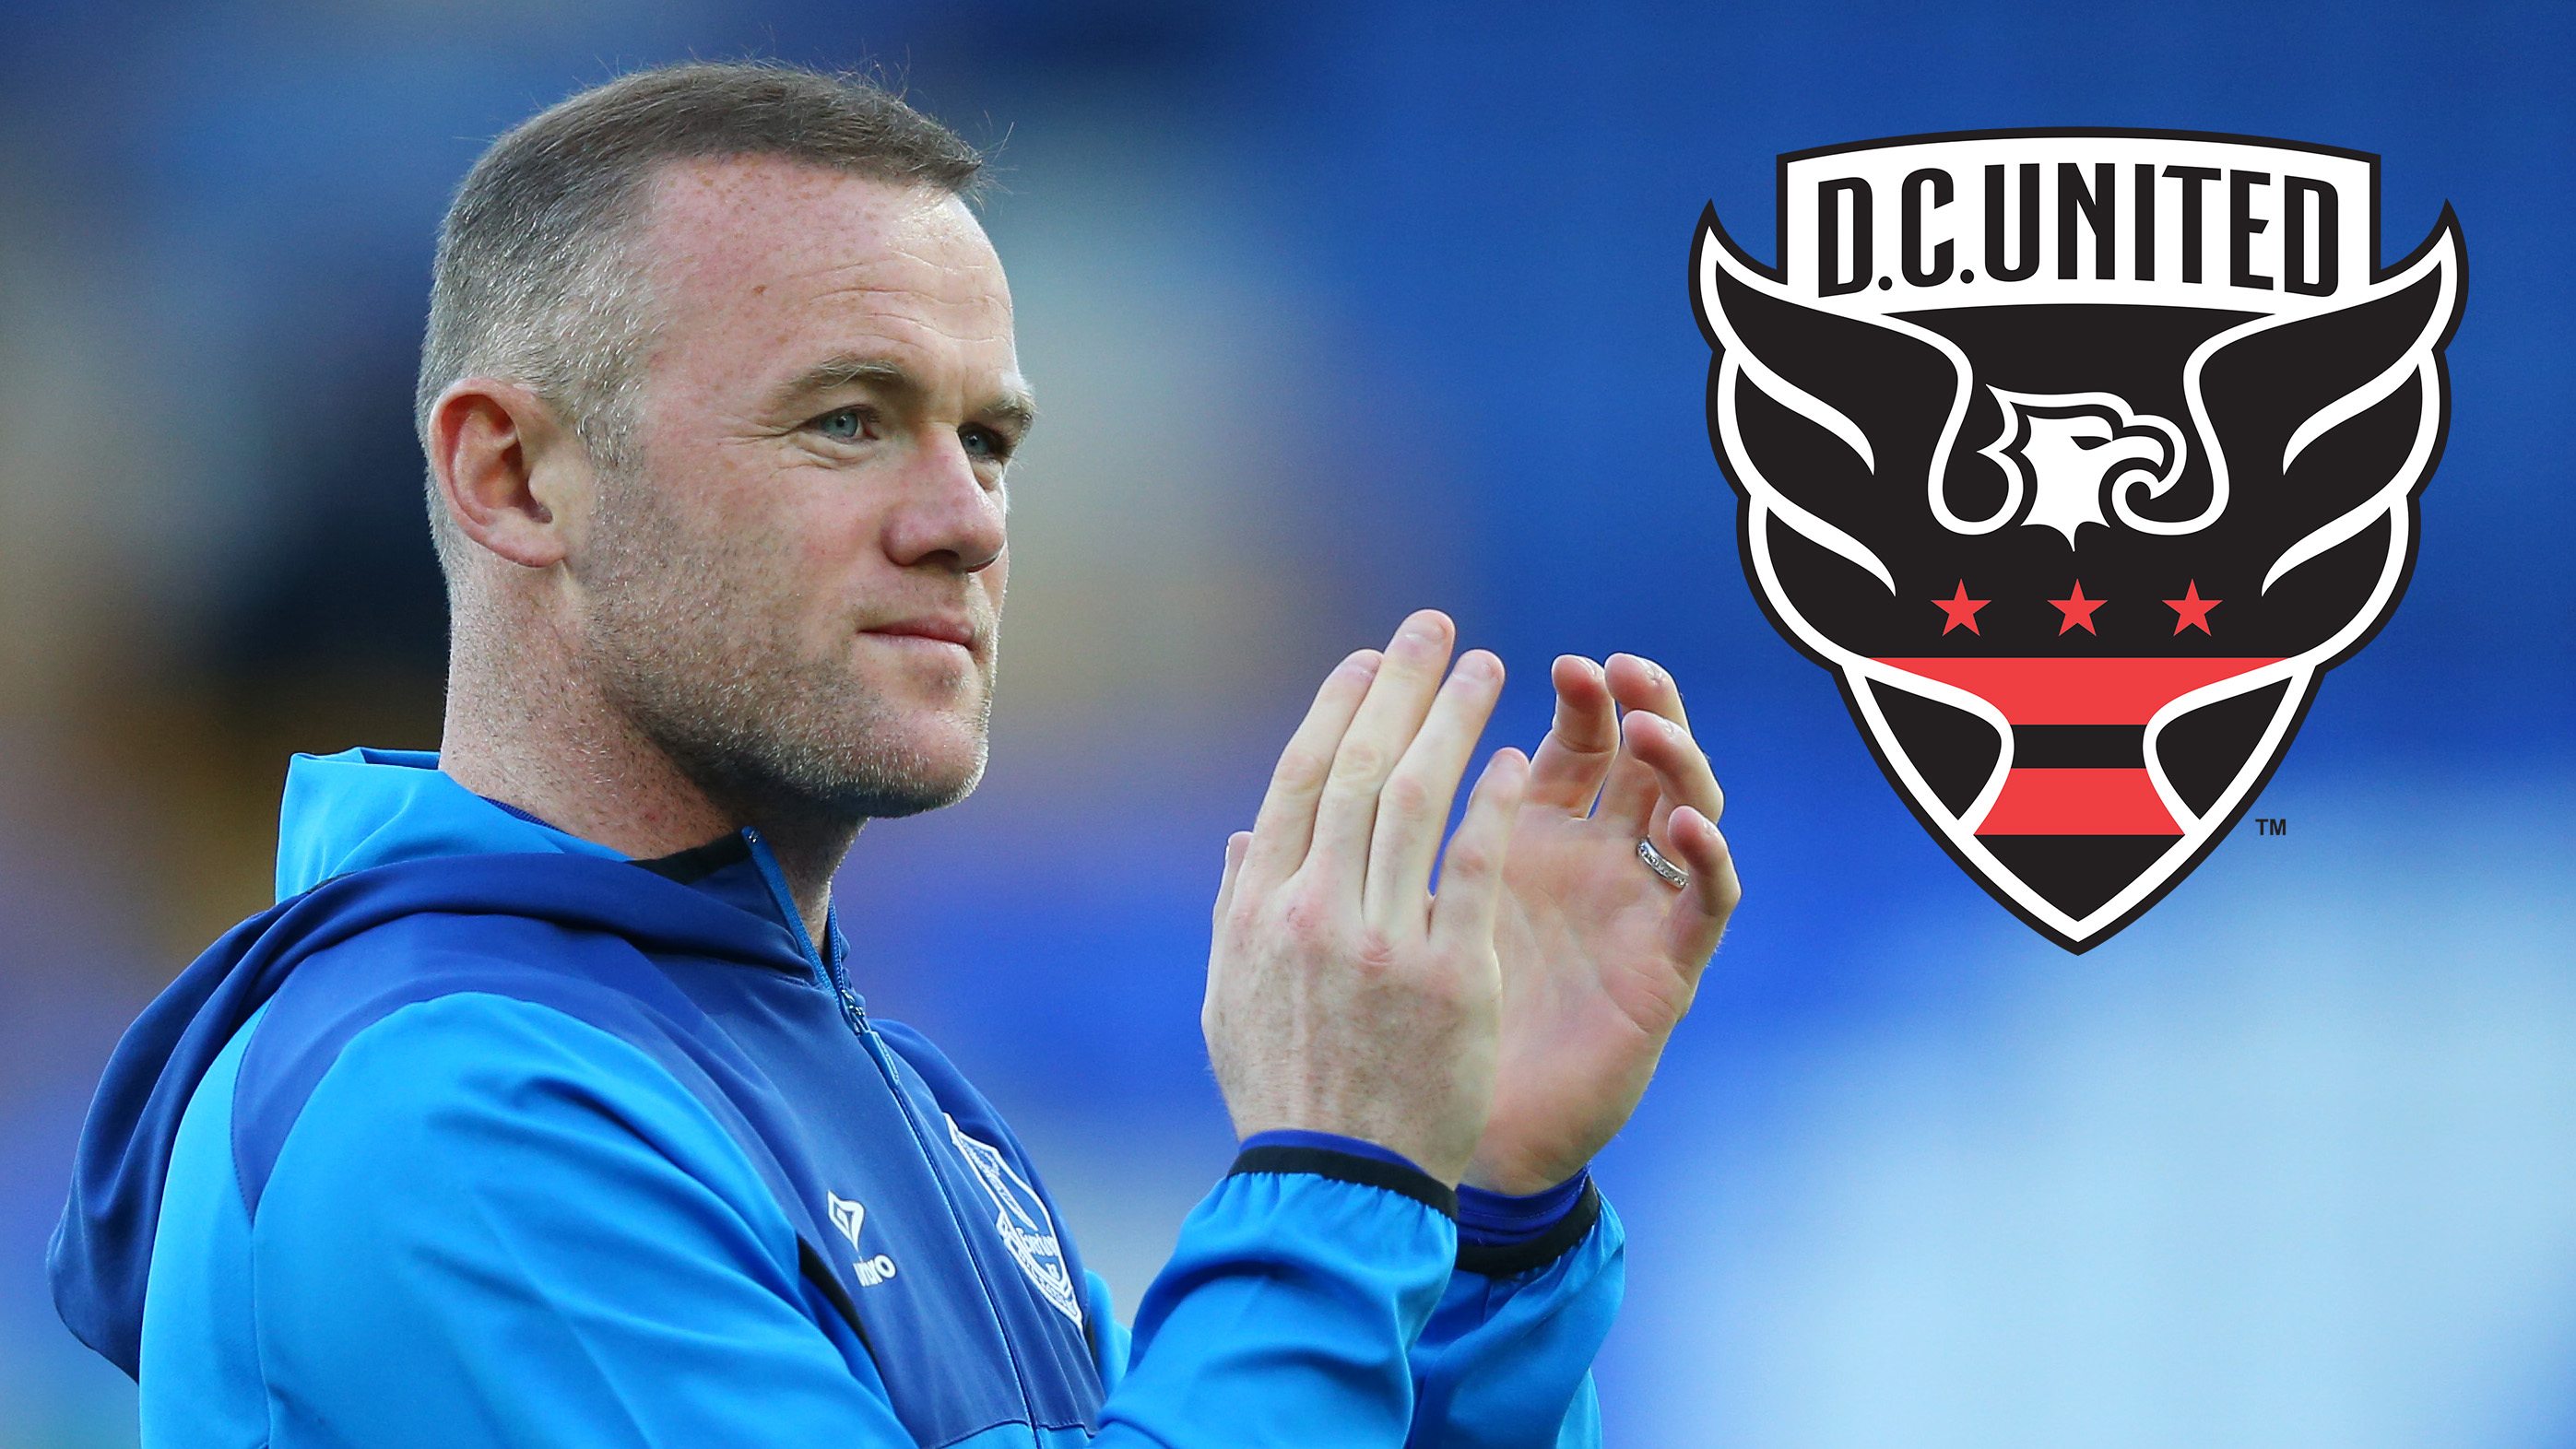 Former Manchester United star Rooney completes D.C. United move